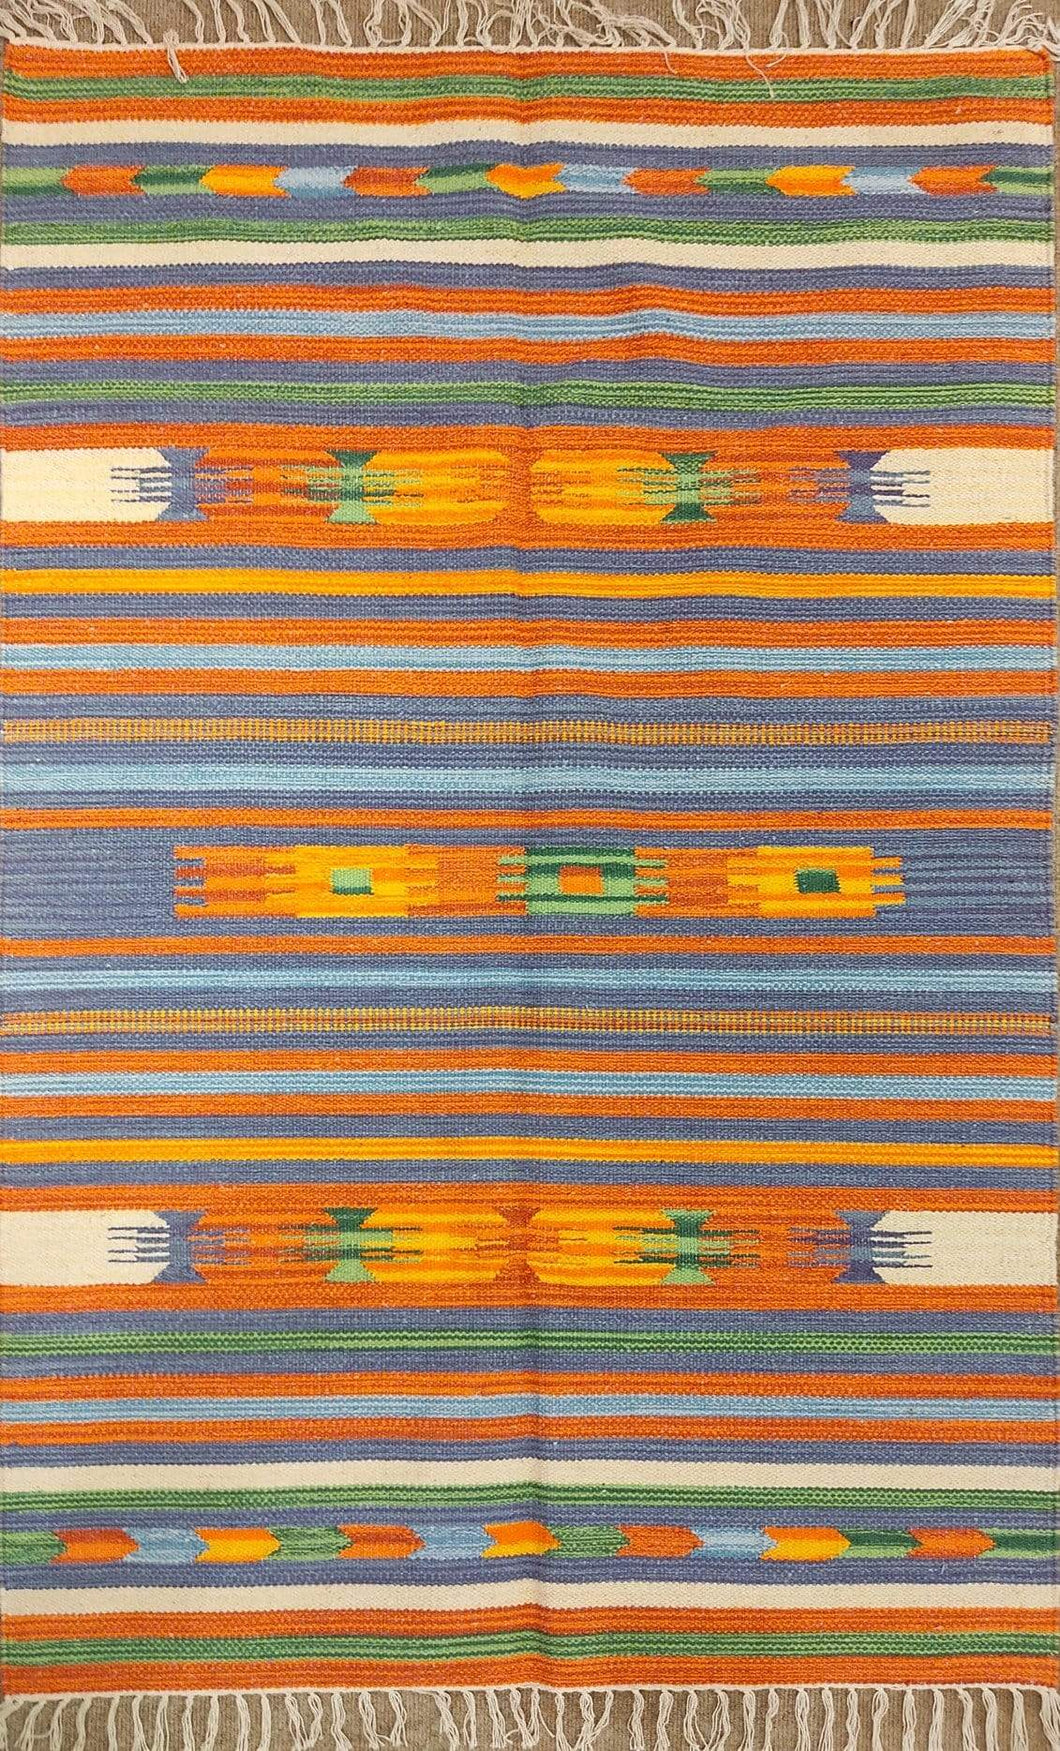 The Rugs Cafe Dhurries 3.4x4.10 / Multi Colorful Stripe Indoor Outdoor Linear cum Abstract Rug [Handmade]